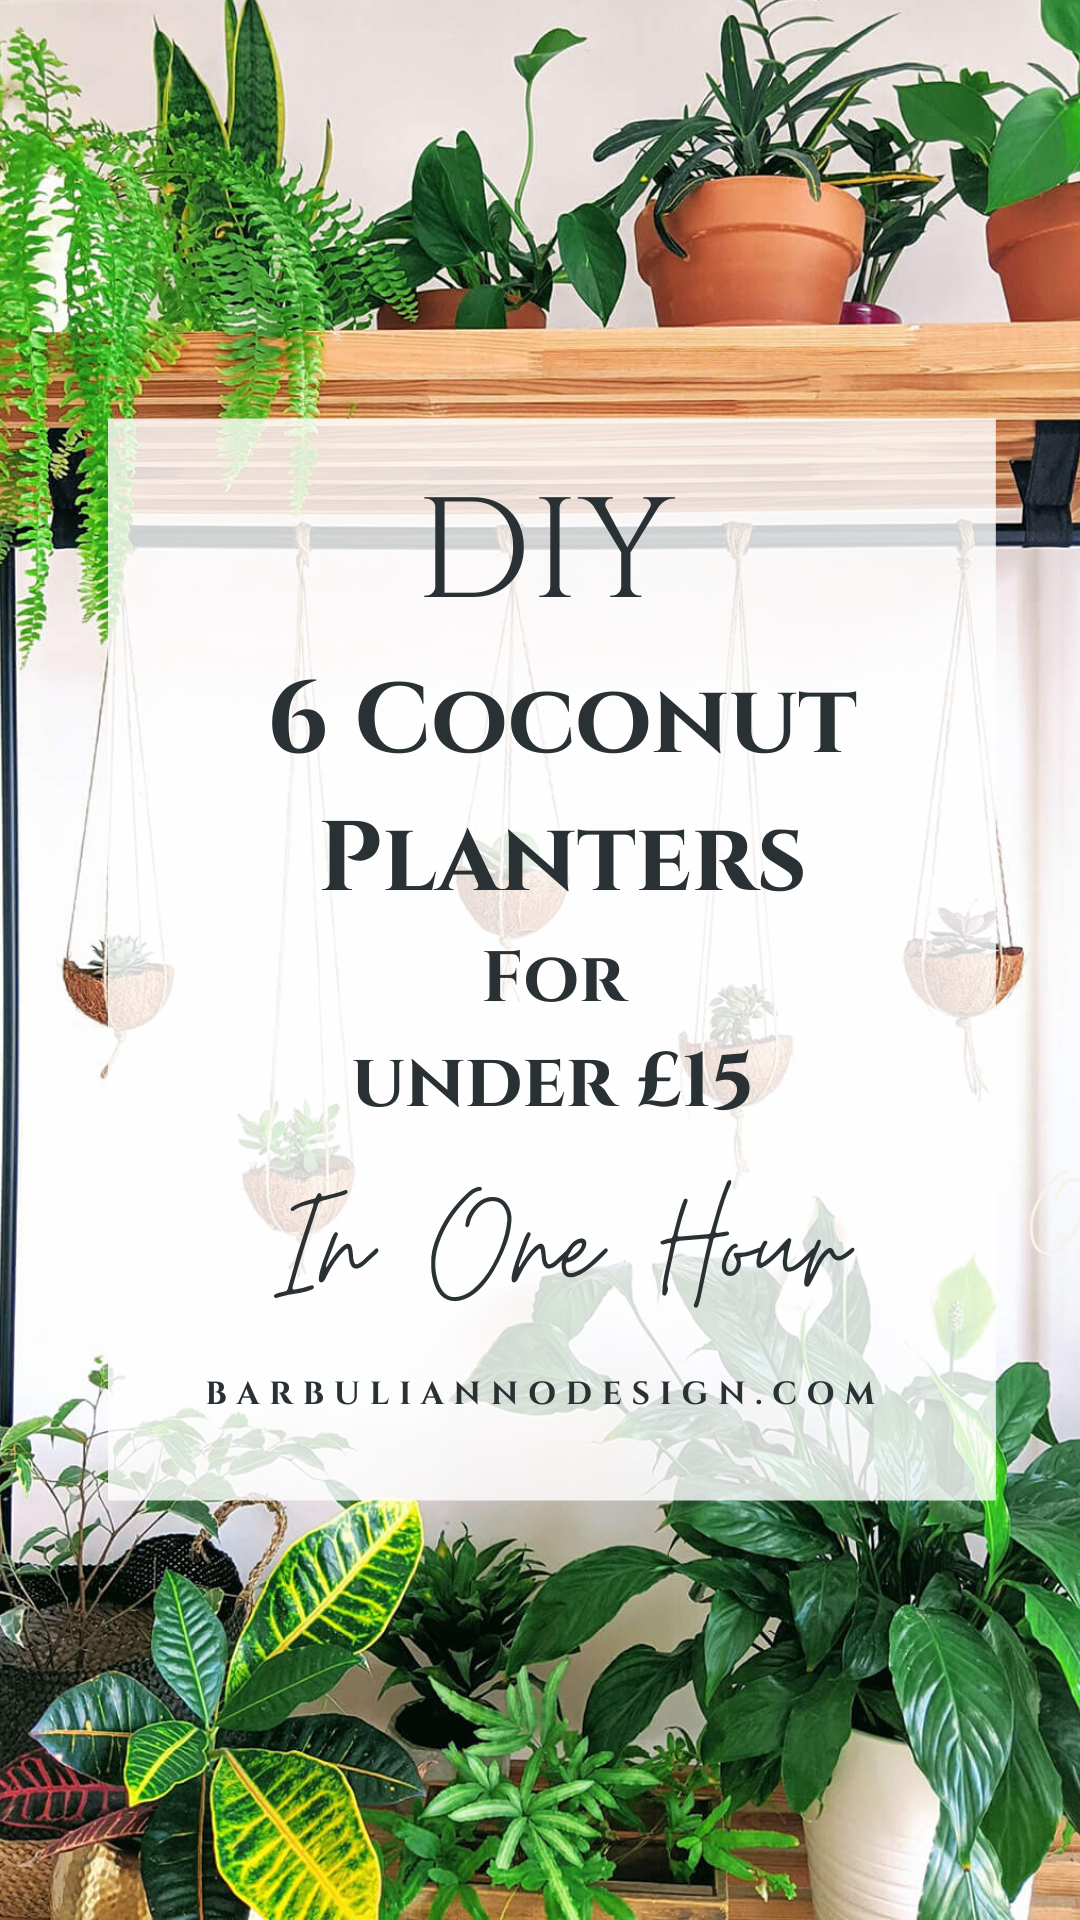 How to make a coconut shell plant hanger. Coconut shell plant hangers on a standing plant shelf filled with indoor plants.